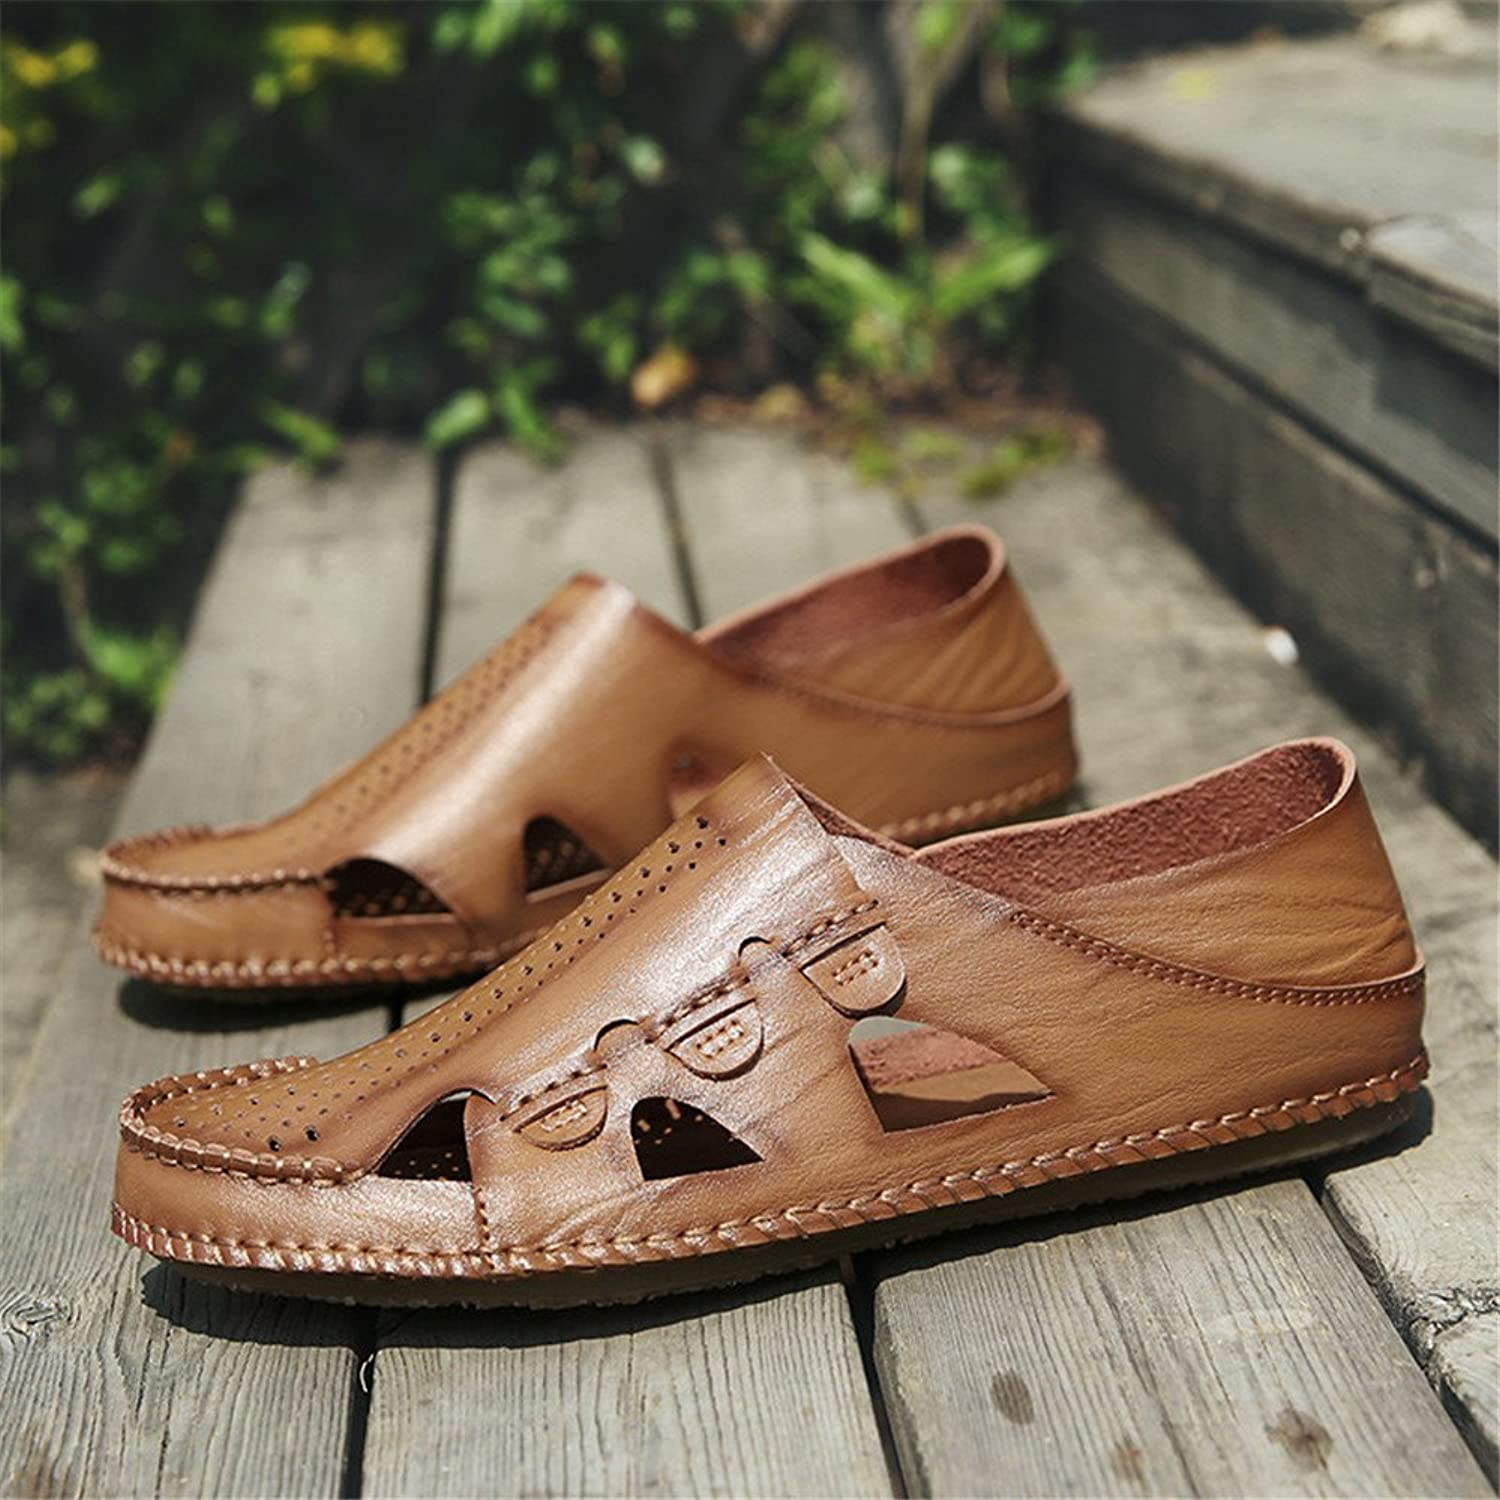 XUJW-Sandals, Men's Summer Genuine Leather Beach Slippers Casual Breathable Perforation Handwork Suture Non-Slip Soft Flat Closed Toe Sandals